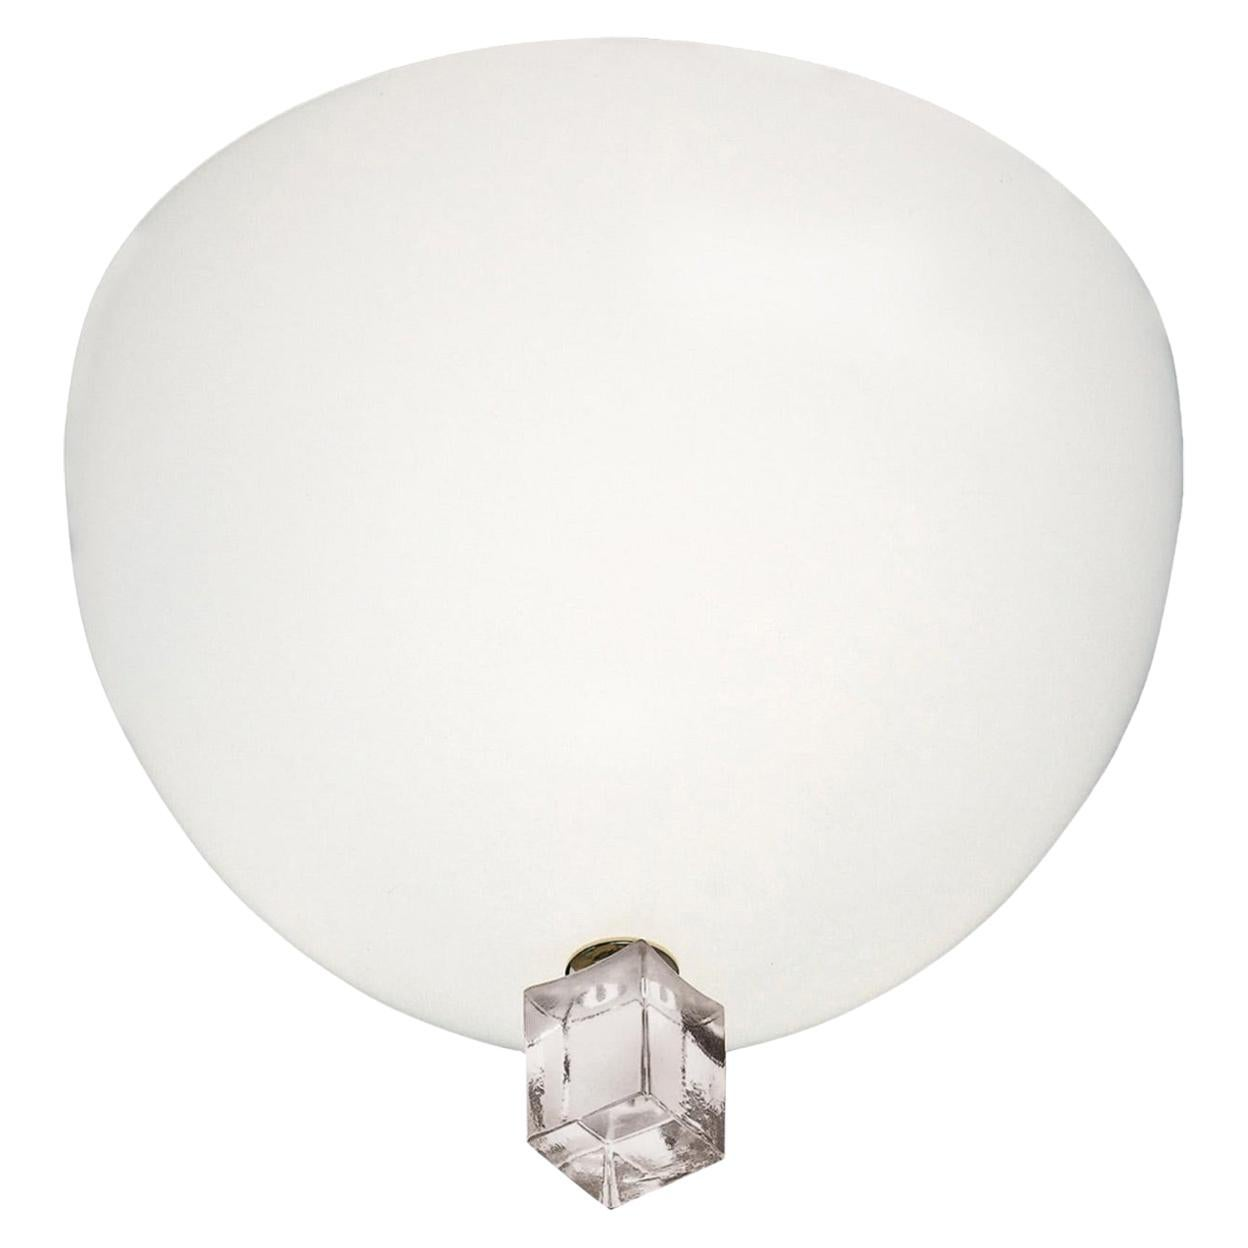 Leucos Large Victor Wall Lamp by Venini